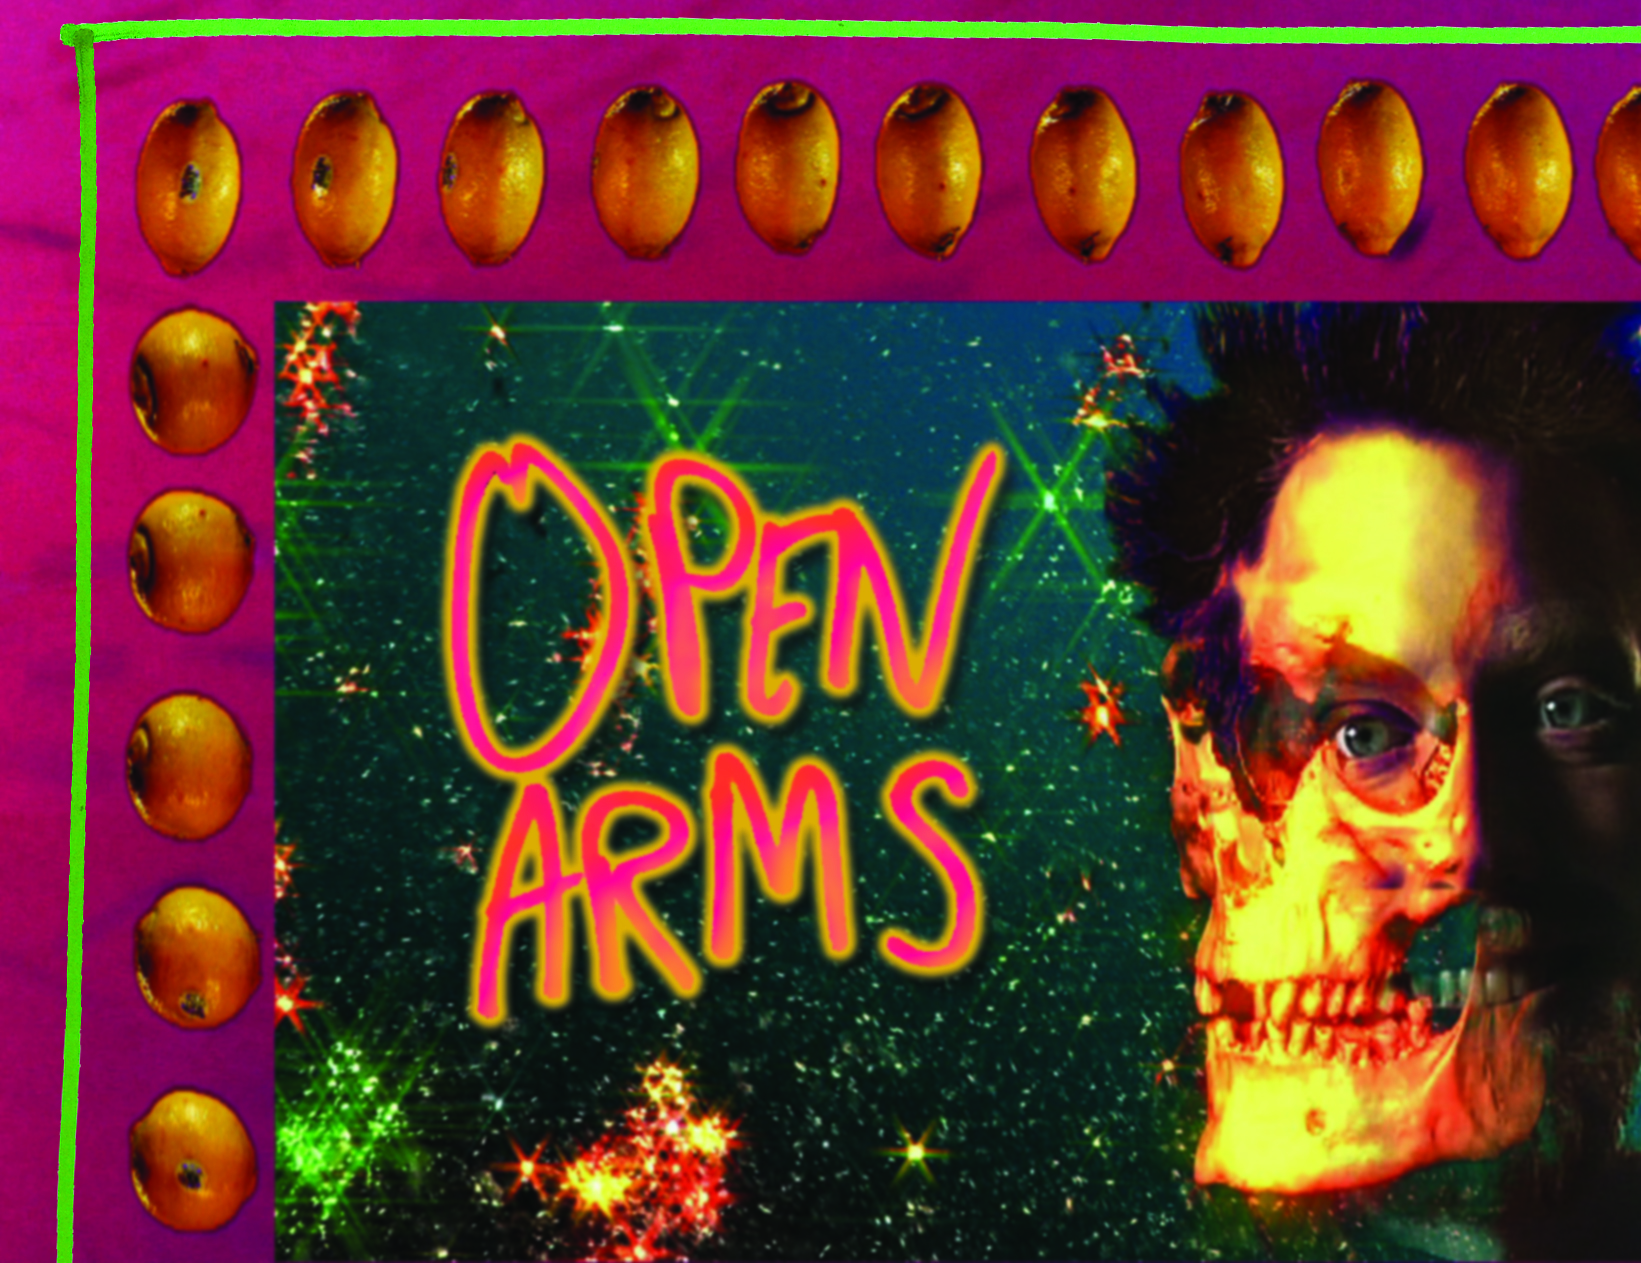 open arms flyer front.jpg